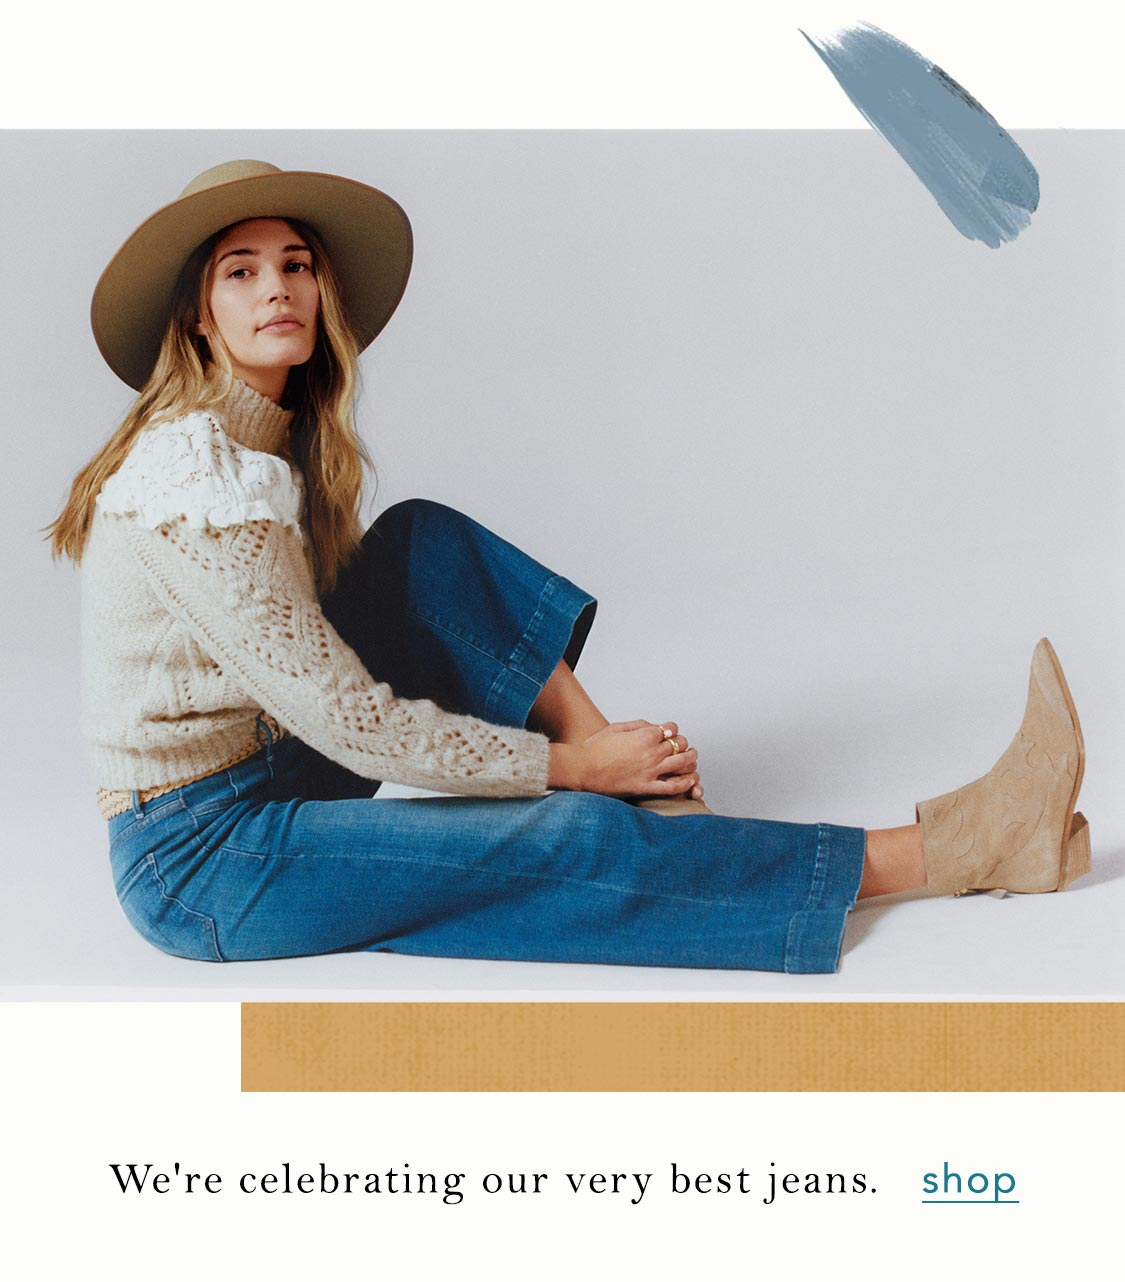 Anthropologie Women's Clothing, Accessories & Home